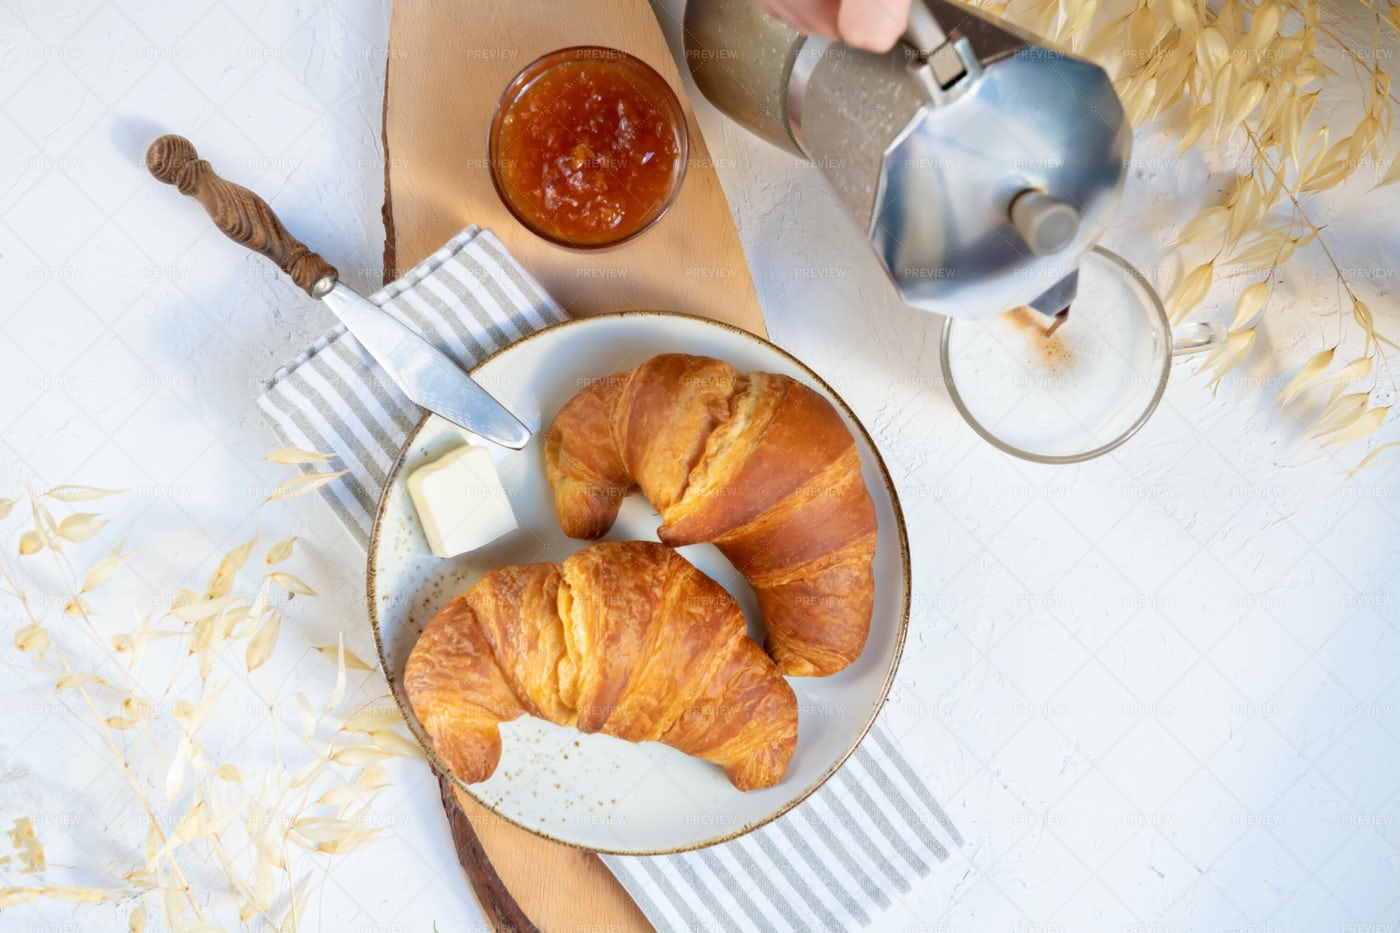 Two Croissants And Coffee: Stock Photos